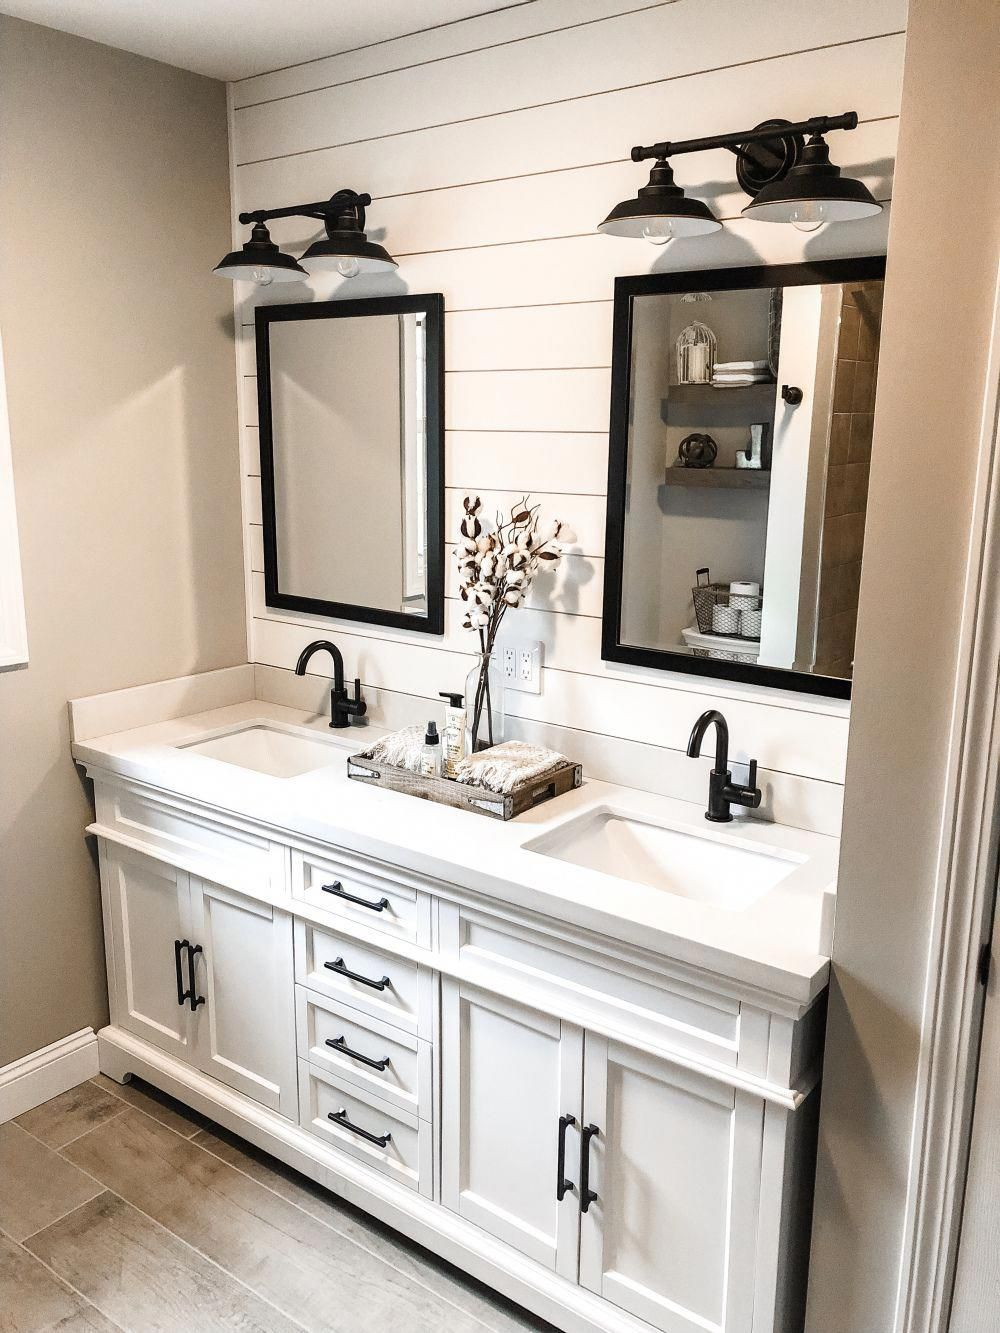 2019 Pantones Color Of The Year Through 15 Home Games Alexander Marchant In 2020 Guest Bathroom Decor Modern Farmhouse Bathroom Bathroom Remodel Master